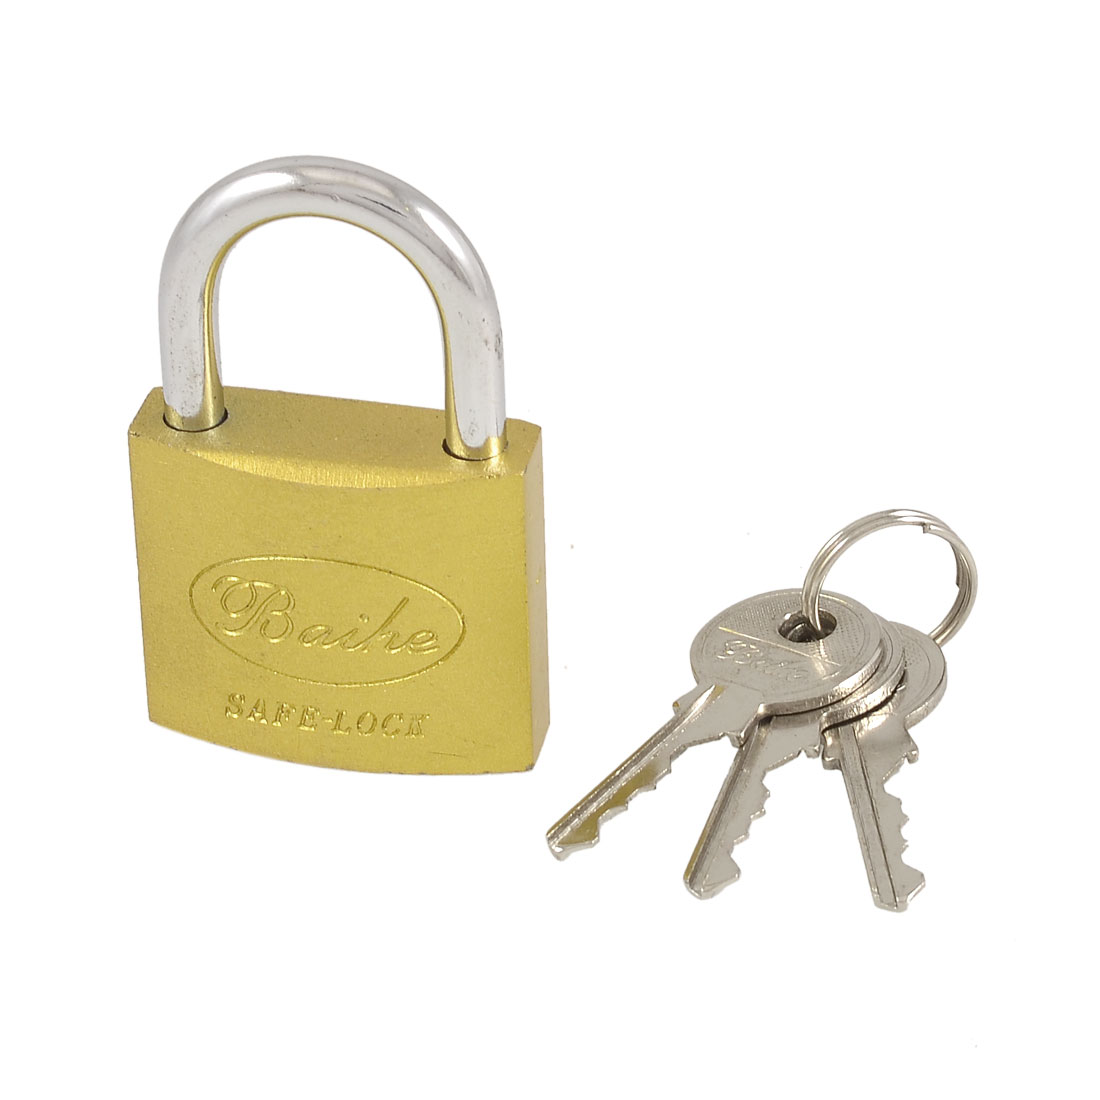 Warehouse Door Gold Tone Metal Security Padlock 38mm + Keys